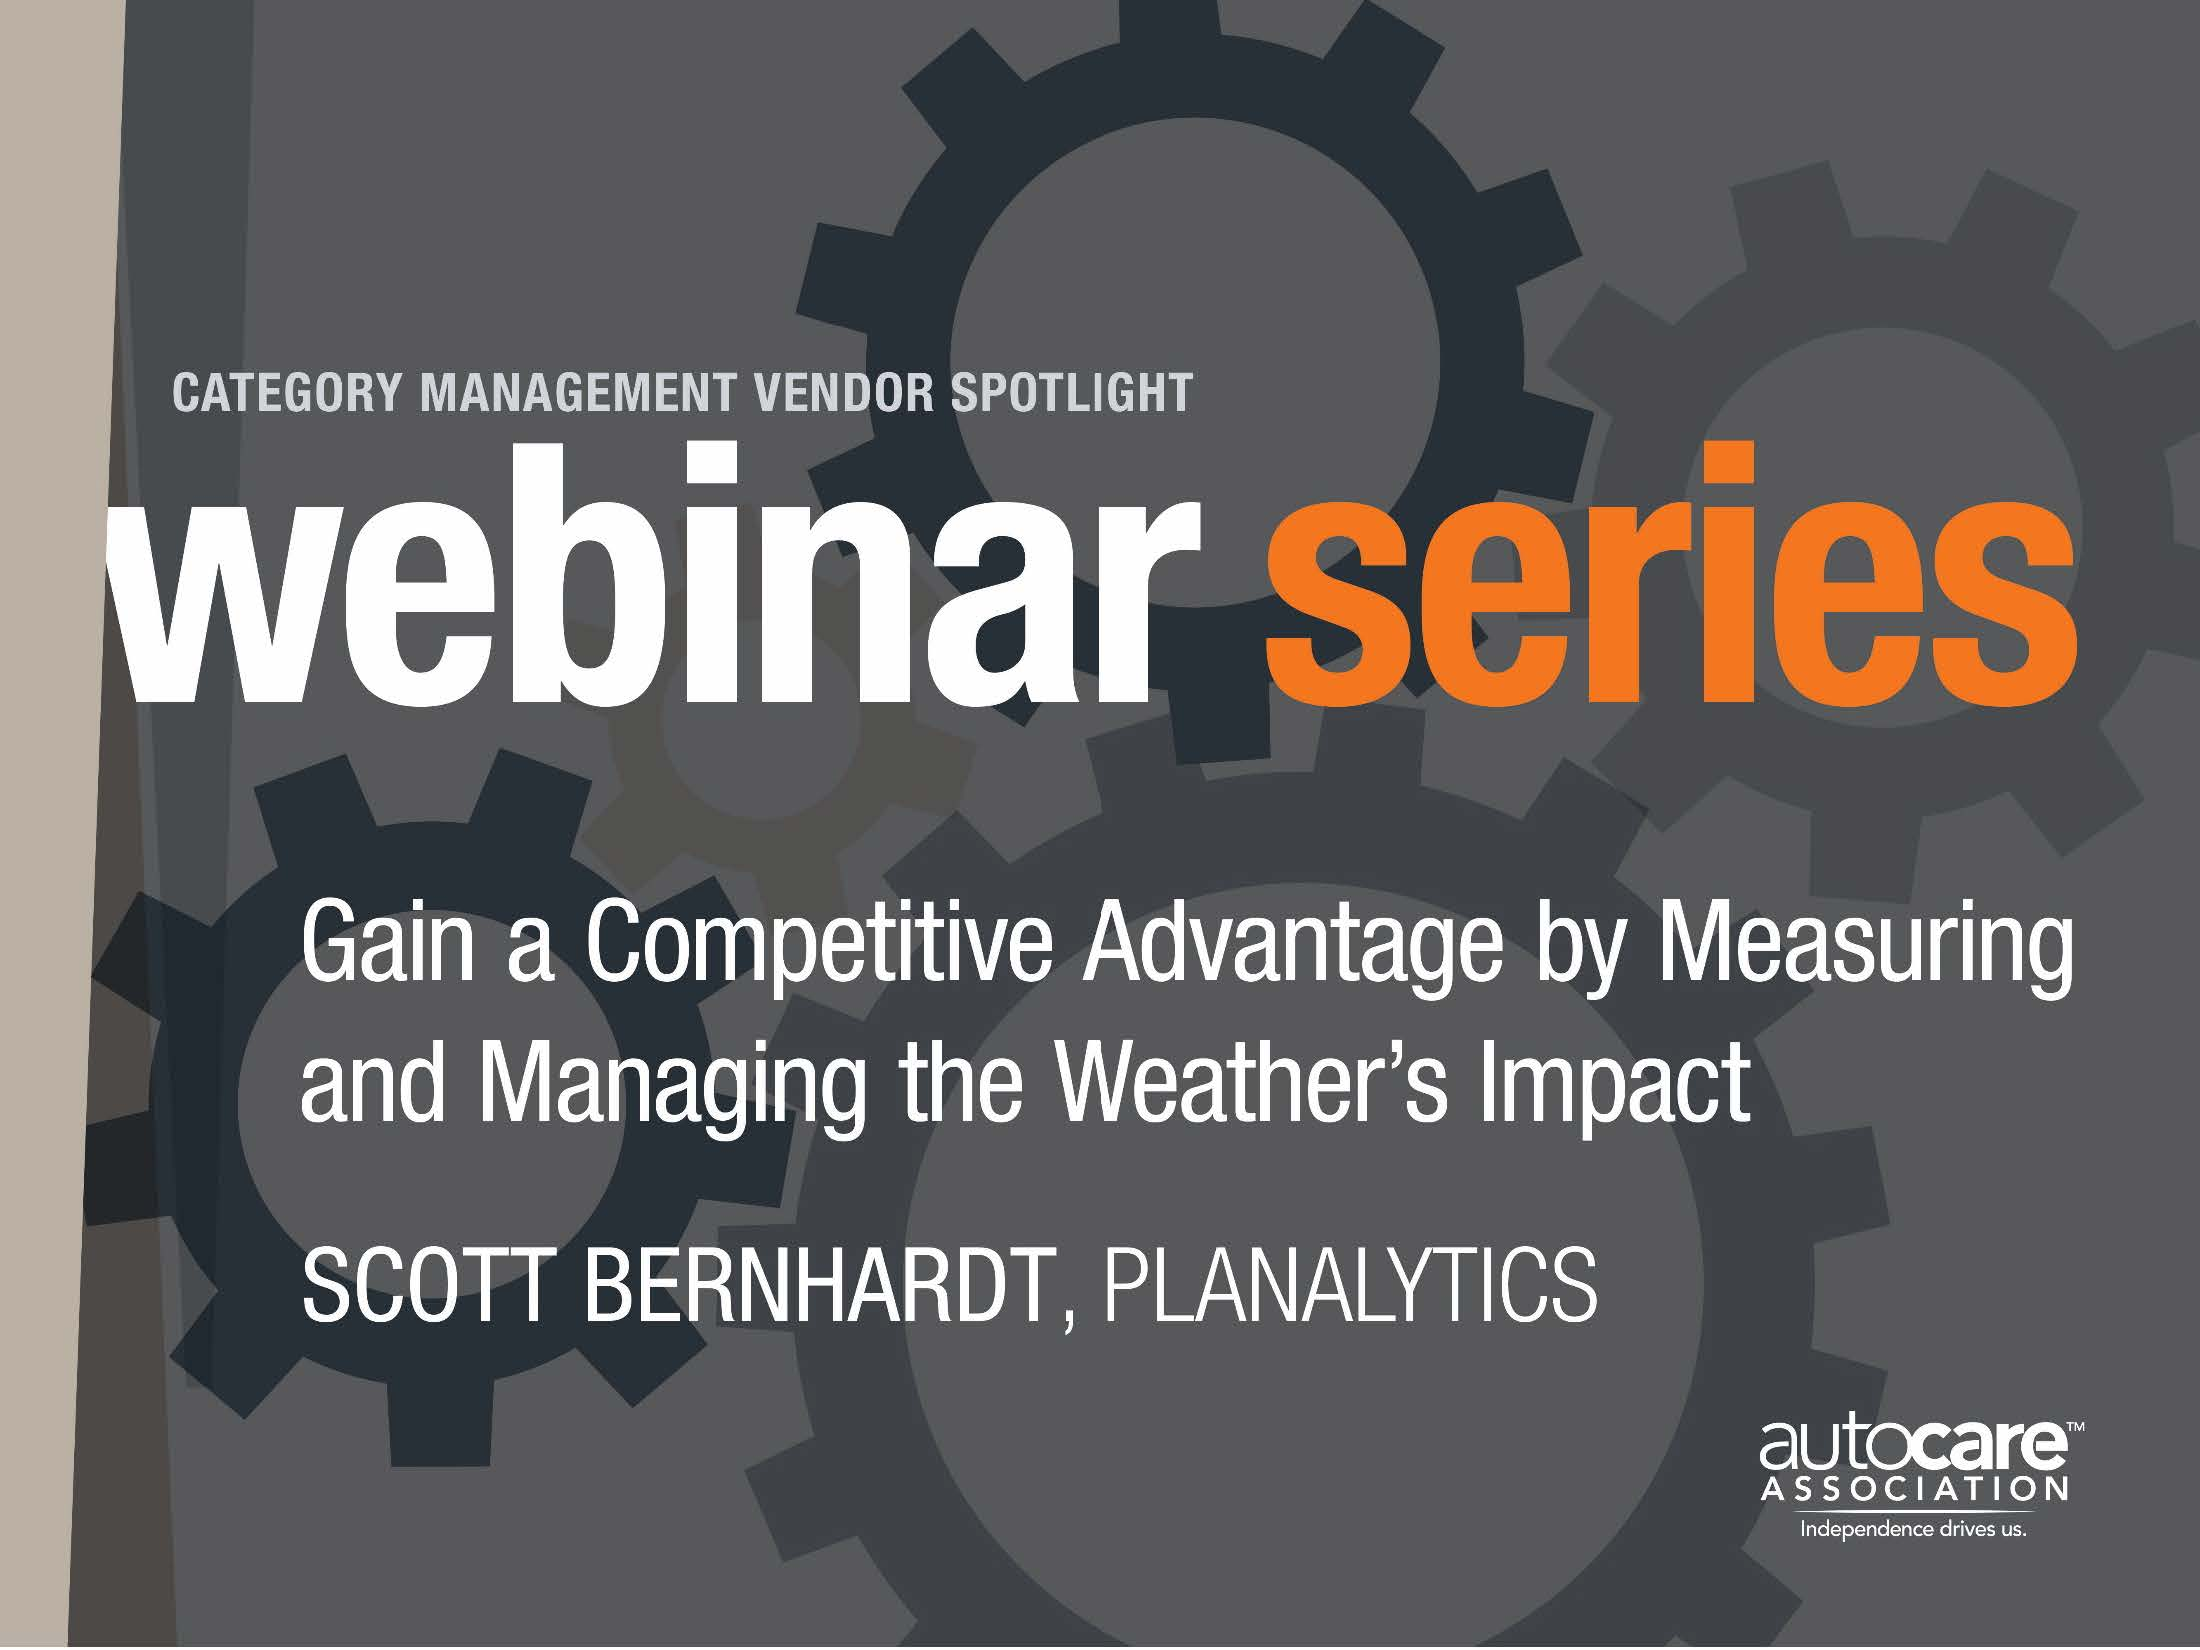 Gain a Competitive Advantage by Measuring and Managing the Weather's Impact